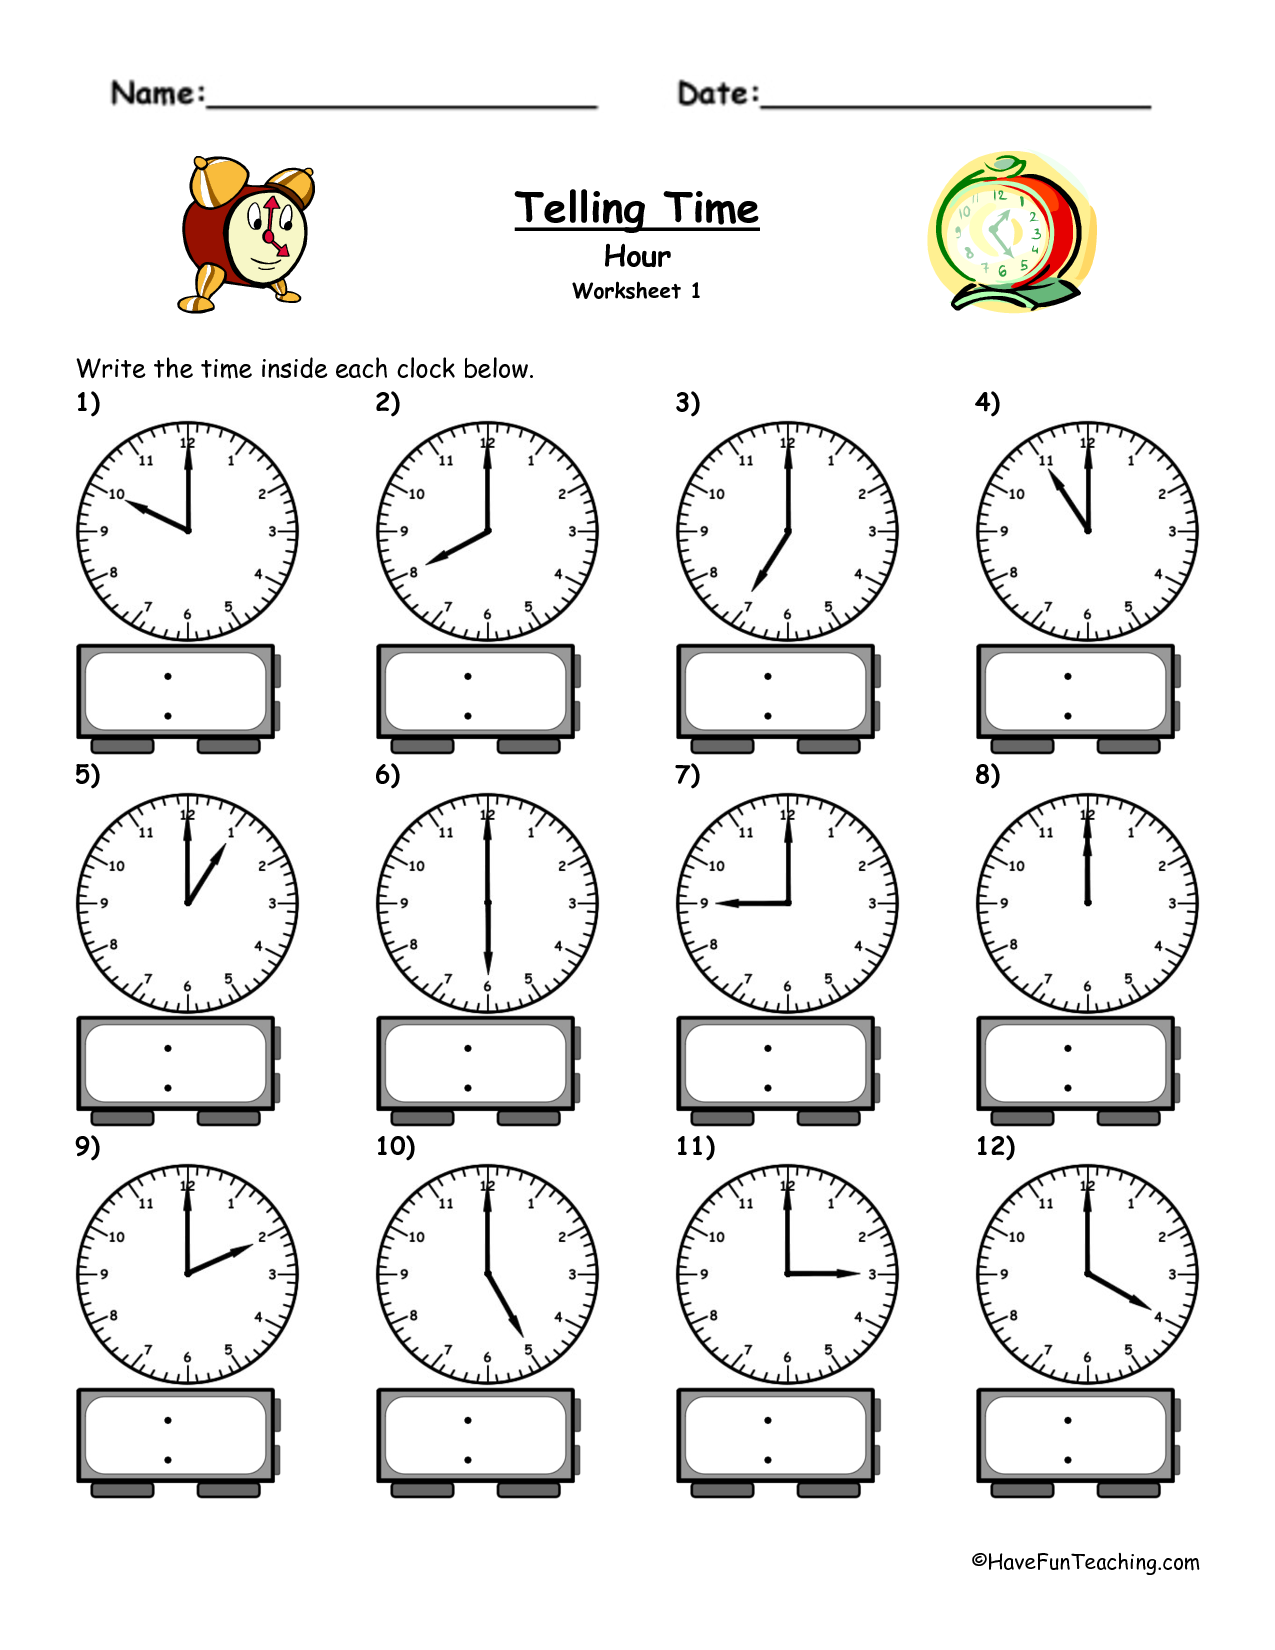 Worksheet Free Worksheets Telling Time telling time worksheets and google search on pinterest